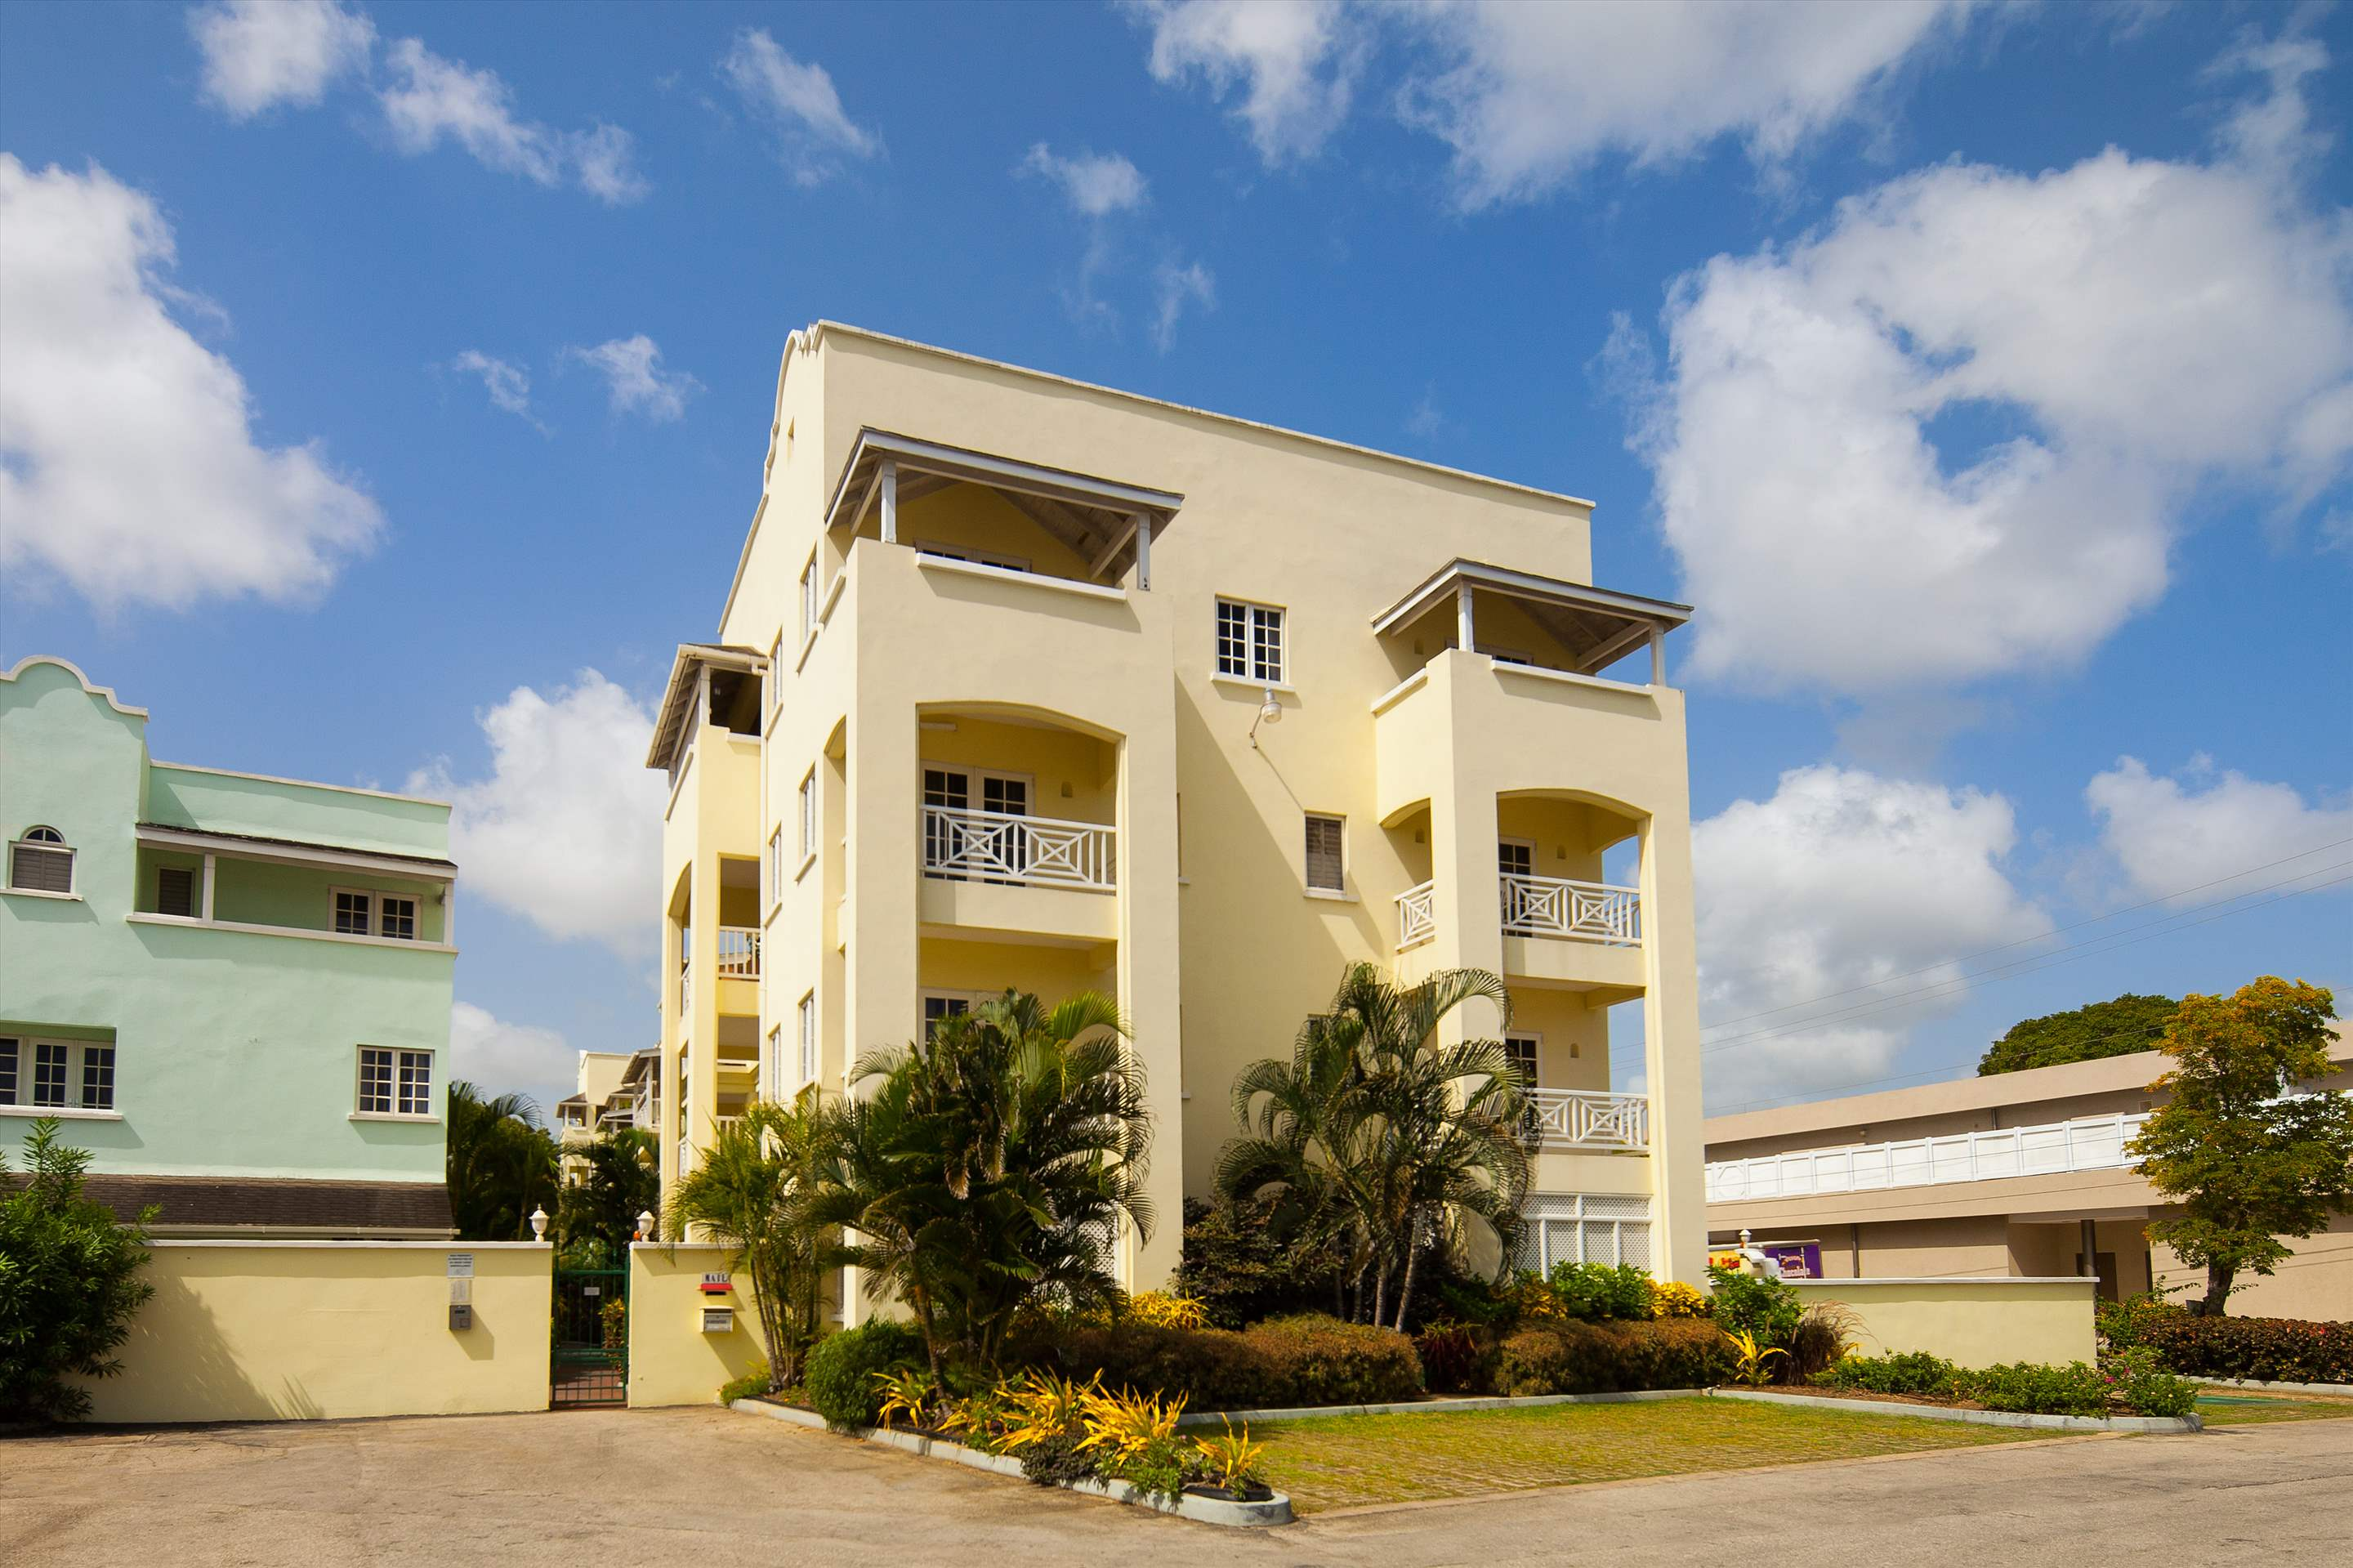 Margate Gardens 4, 2 bedroom, 2 bedroom apartment in St. Lawrence Gap & South Coast, Barbados Photo #14